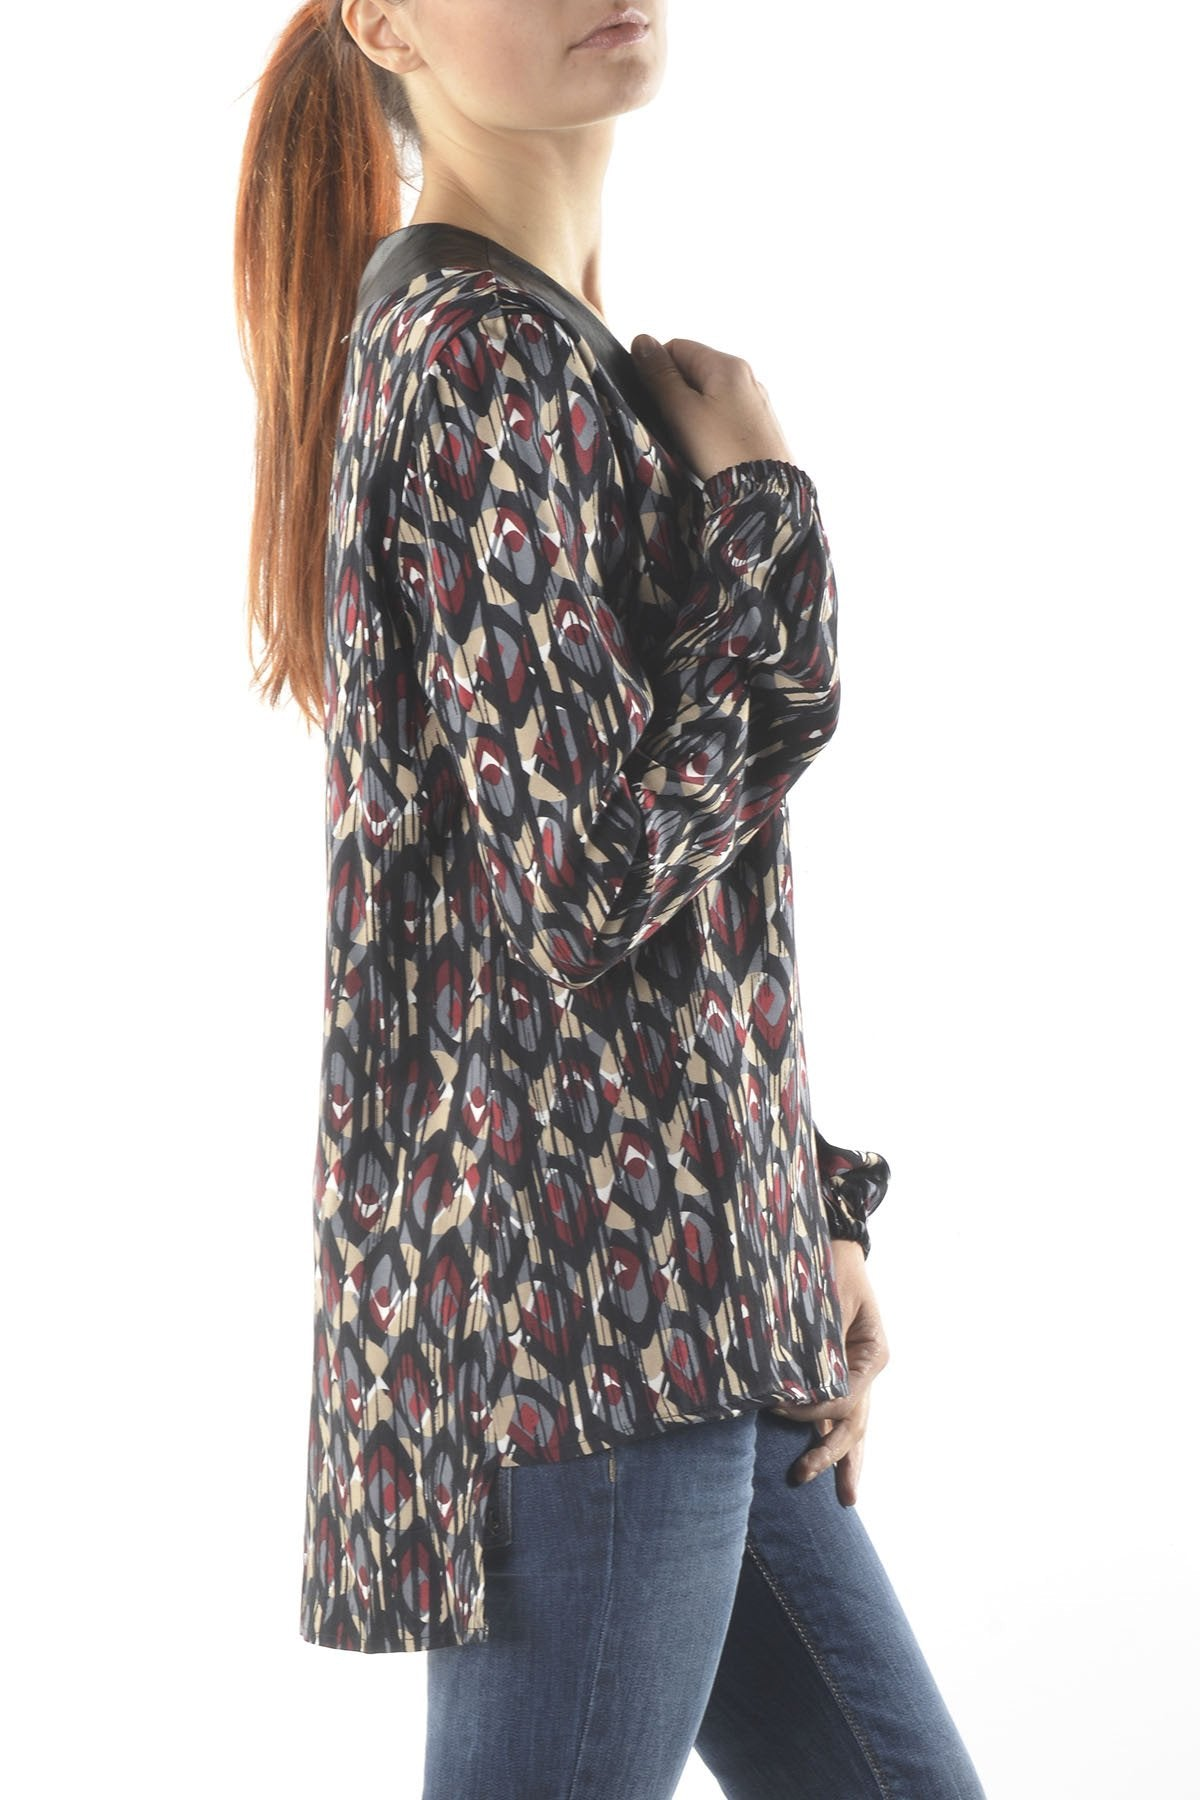 Sexy Woman Femme Blouse